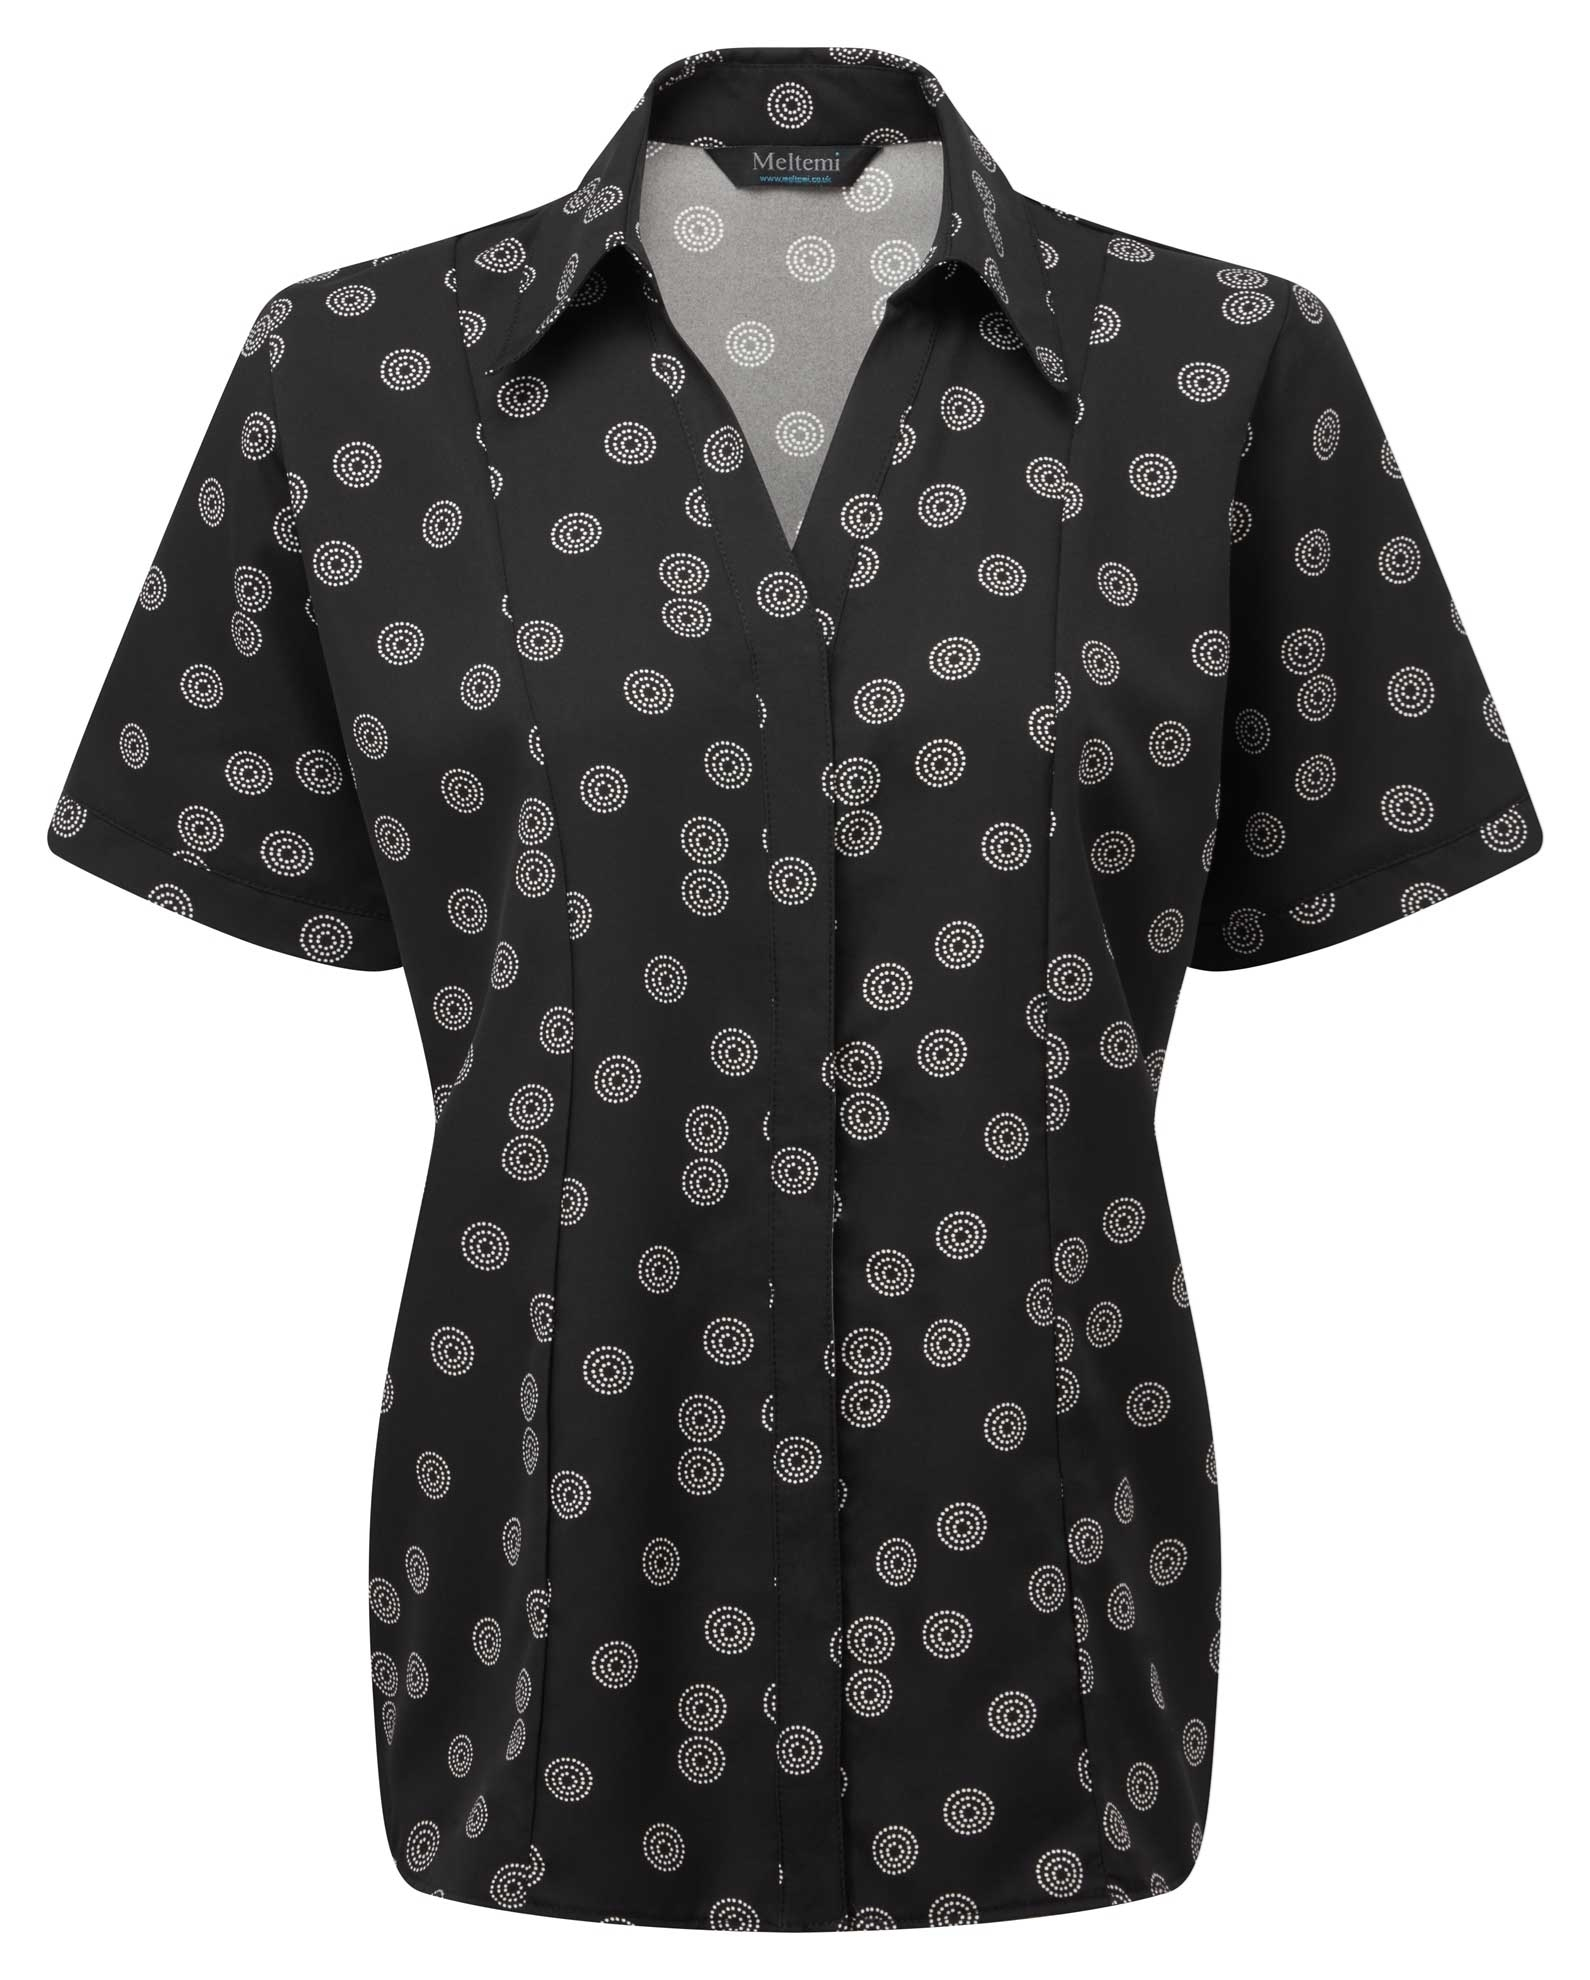 Picture of Semi-Fitted CoolWeave Blouse - Black/White Sienna Print